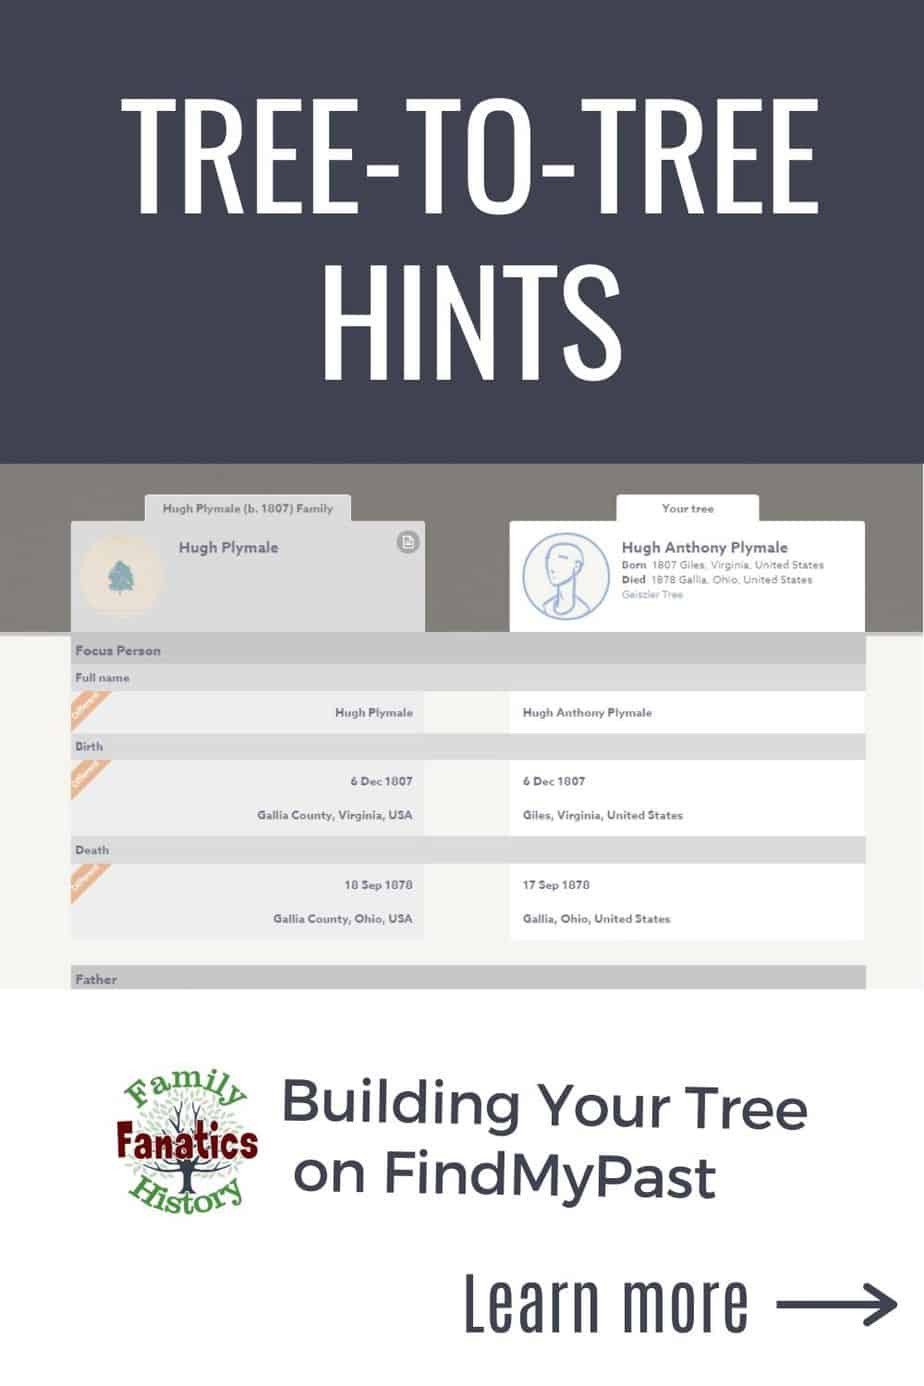 Screen capture of FindMyPast Tree-to-Tree Hints with the title Building Your Tree on FindMyPast